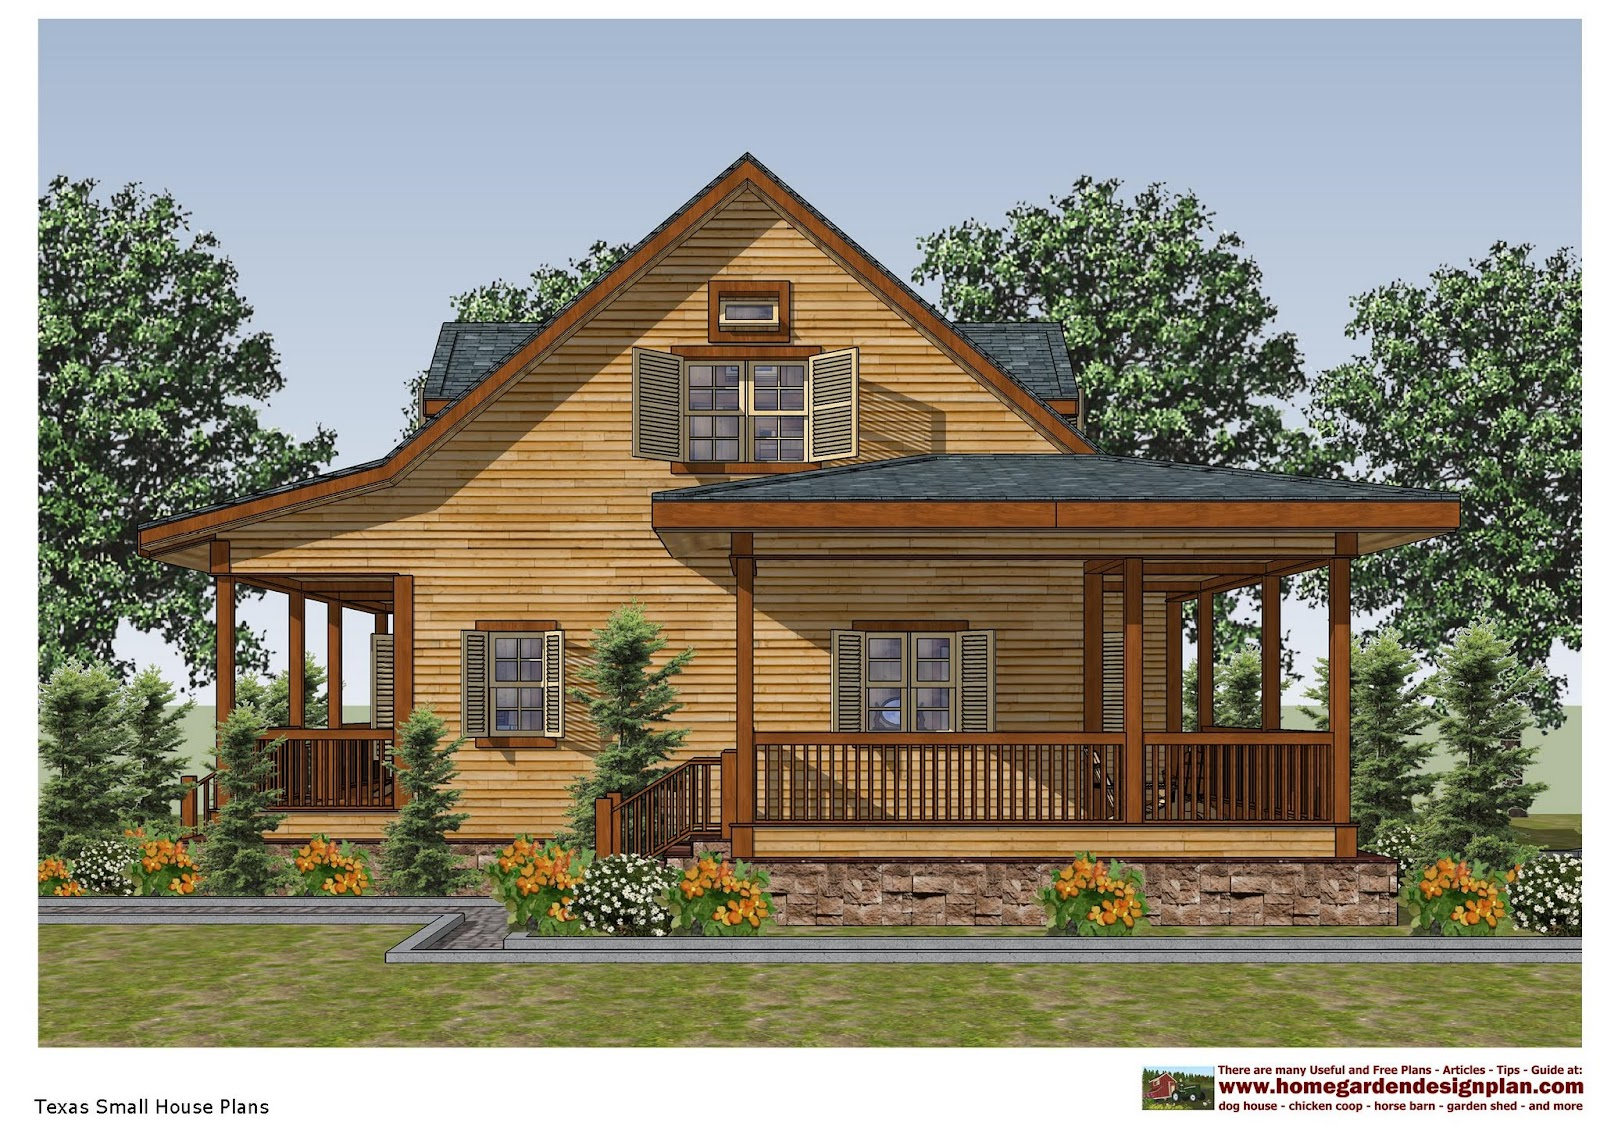 home garden plans: SH100  Small House Plans  Small House Design  in Texas